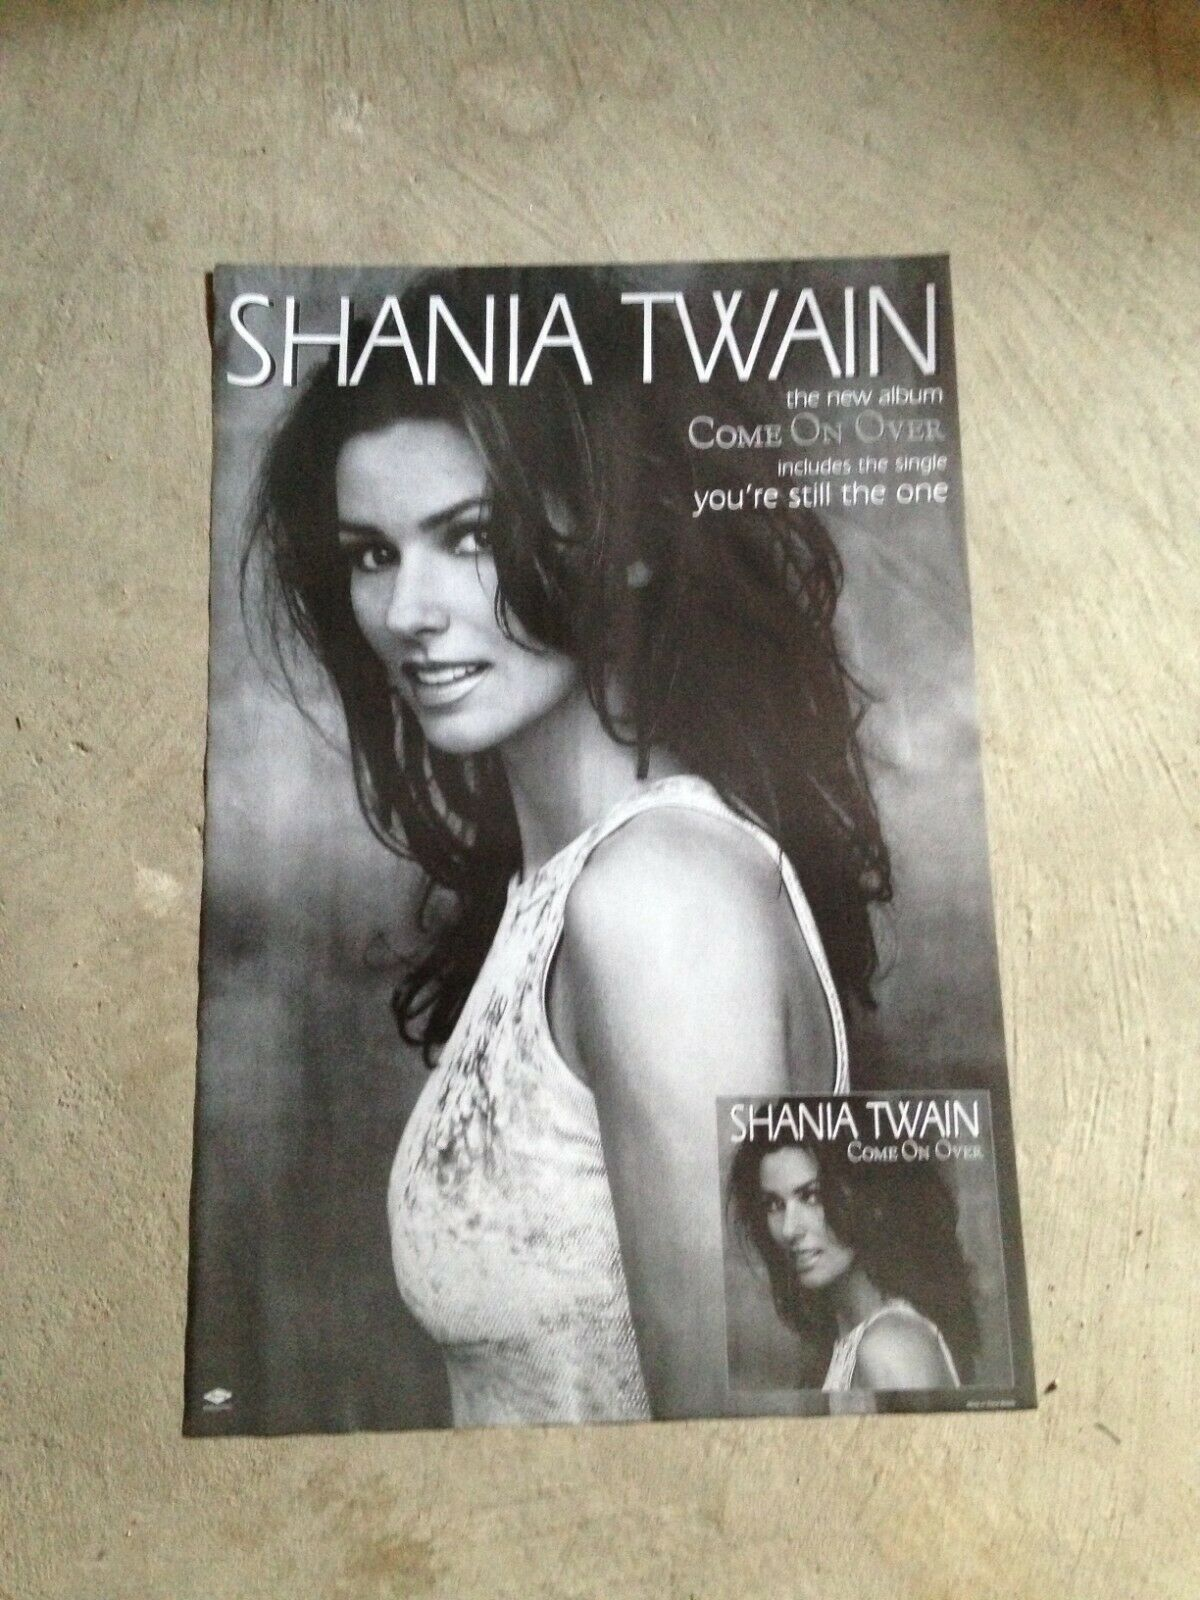 shania twain poster print 24x36 come on over black and white country music